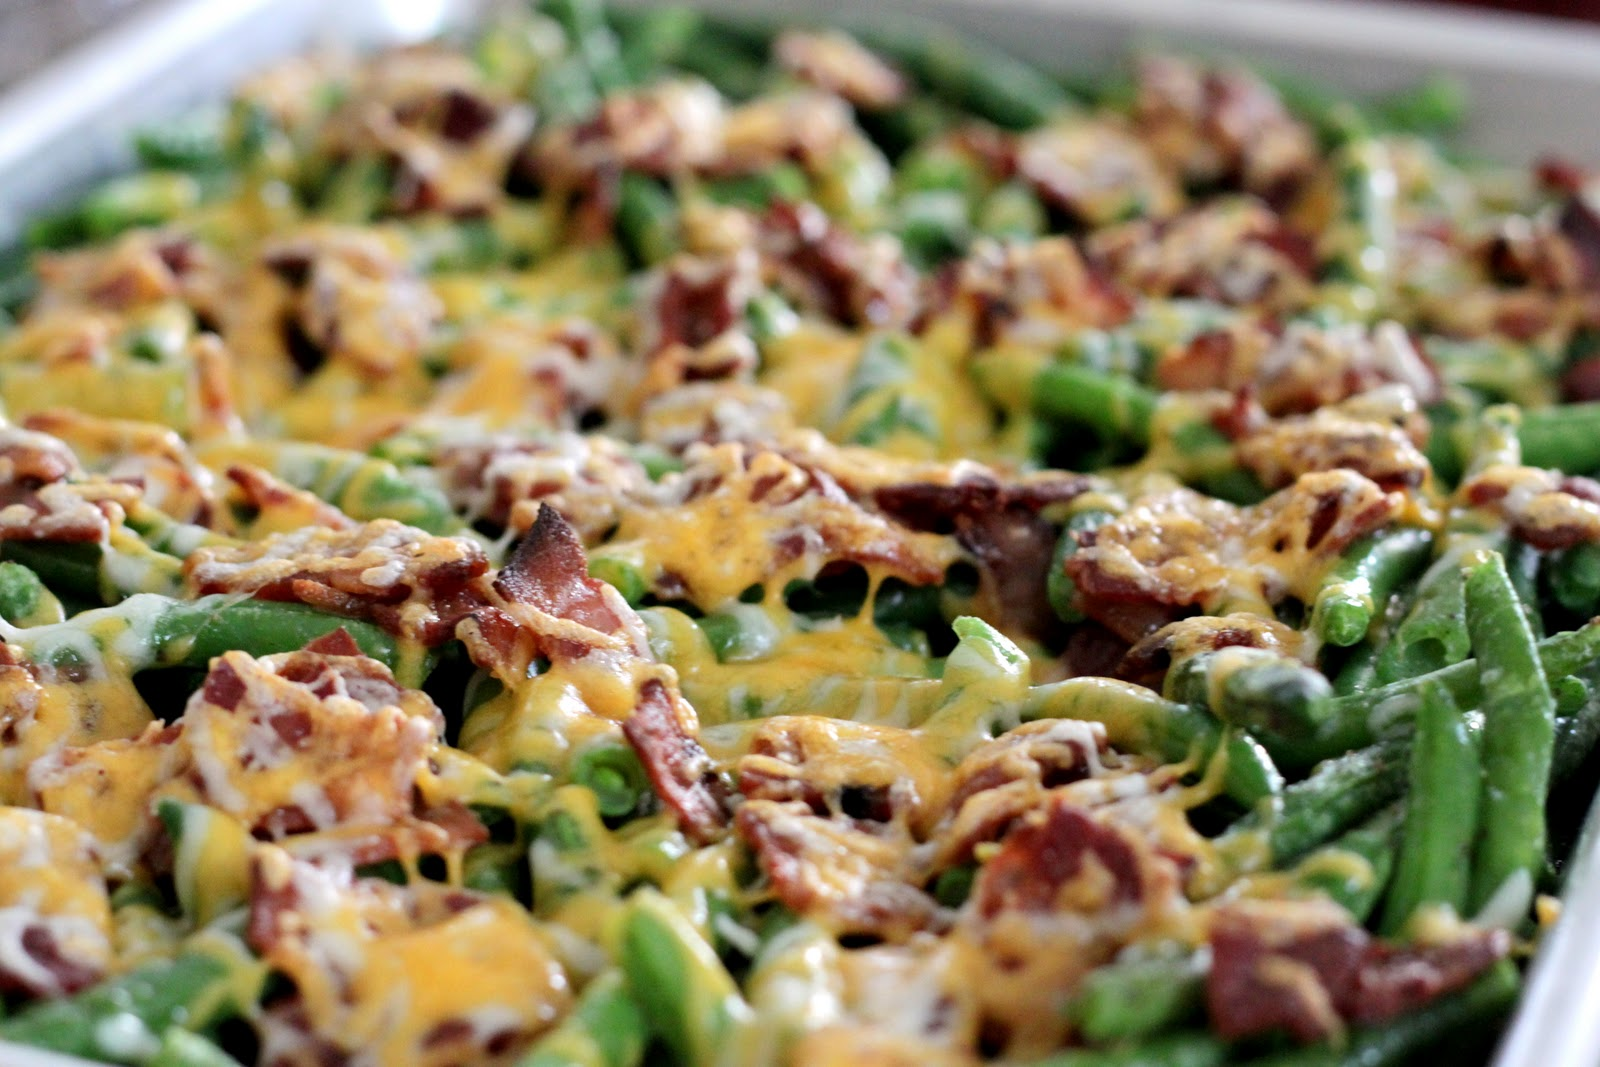 The Cook Next Door: Baked Green Beans with Bacon and Cheese